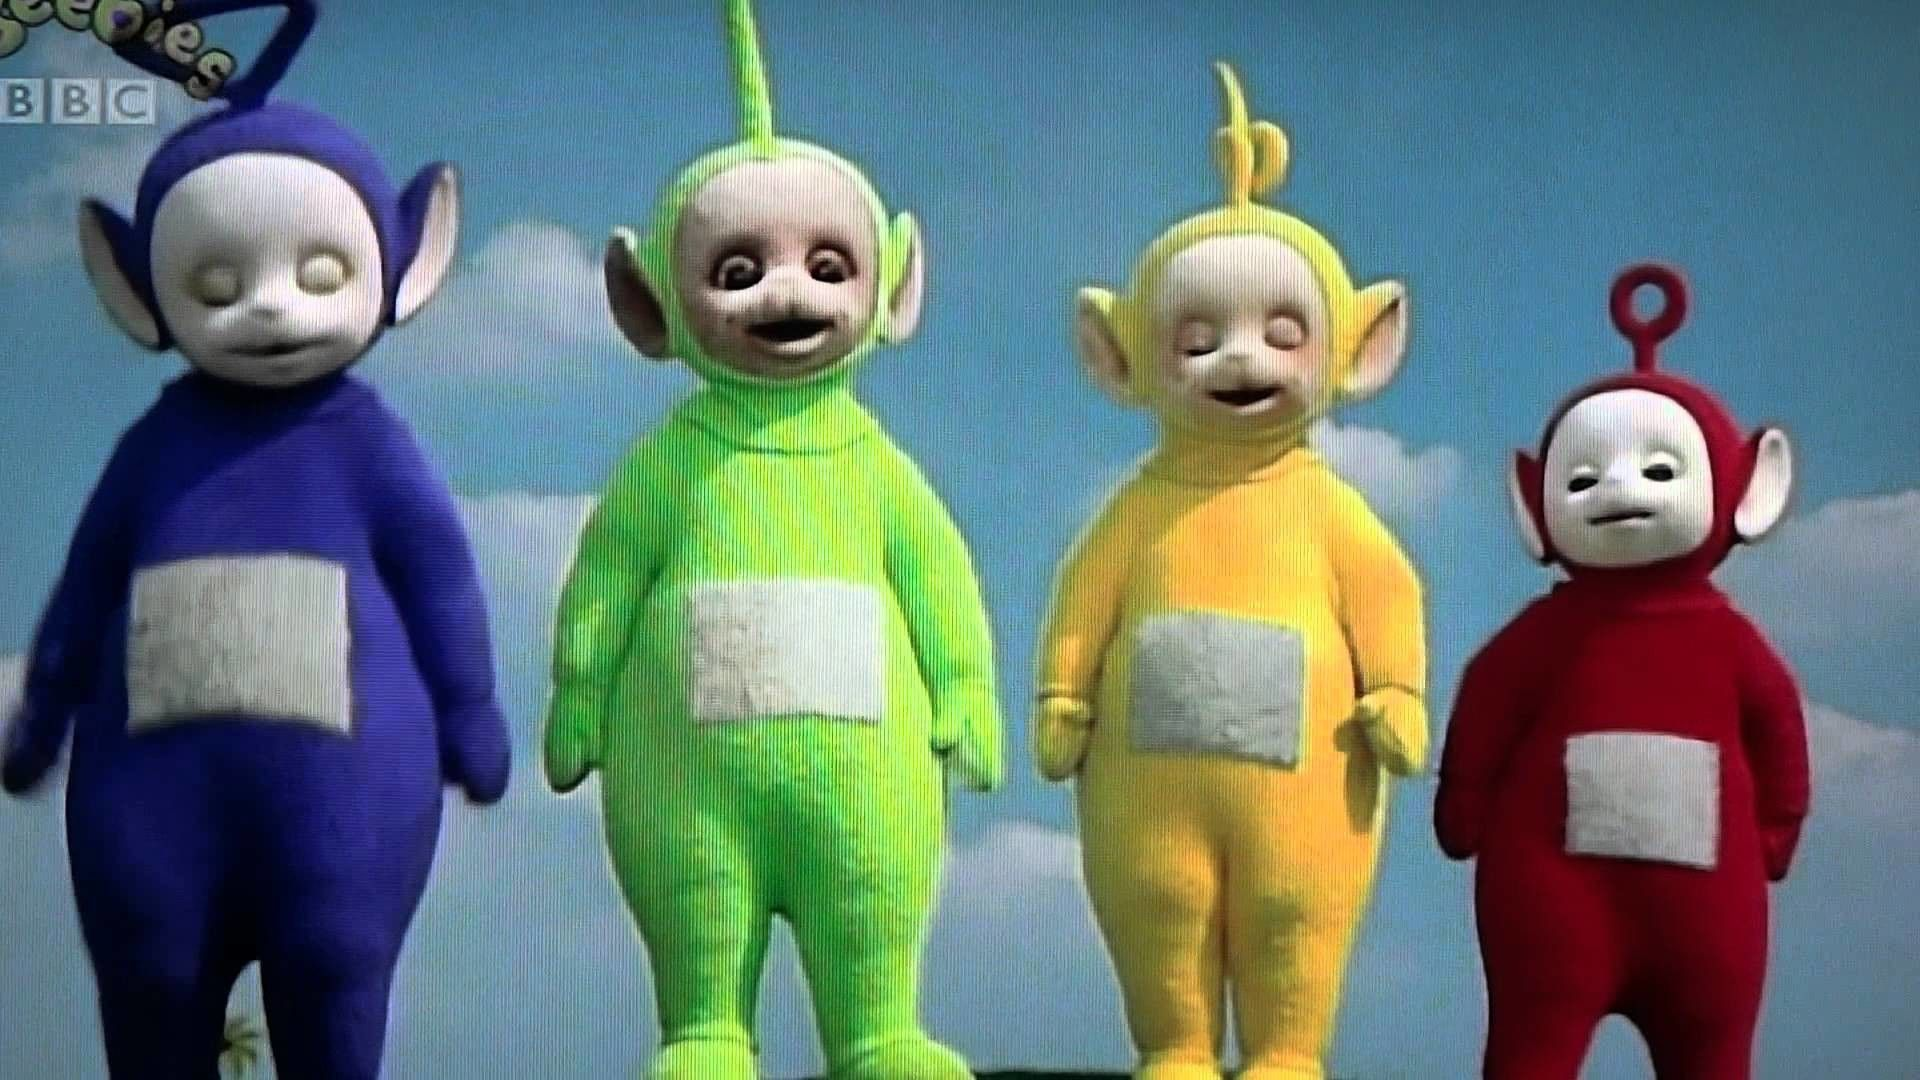 Teletubbies Wallpaper Hd 70 Images In 2020 Teletubbies Wallpaper Best Background Images